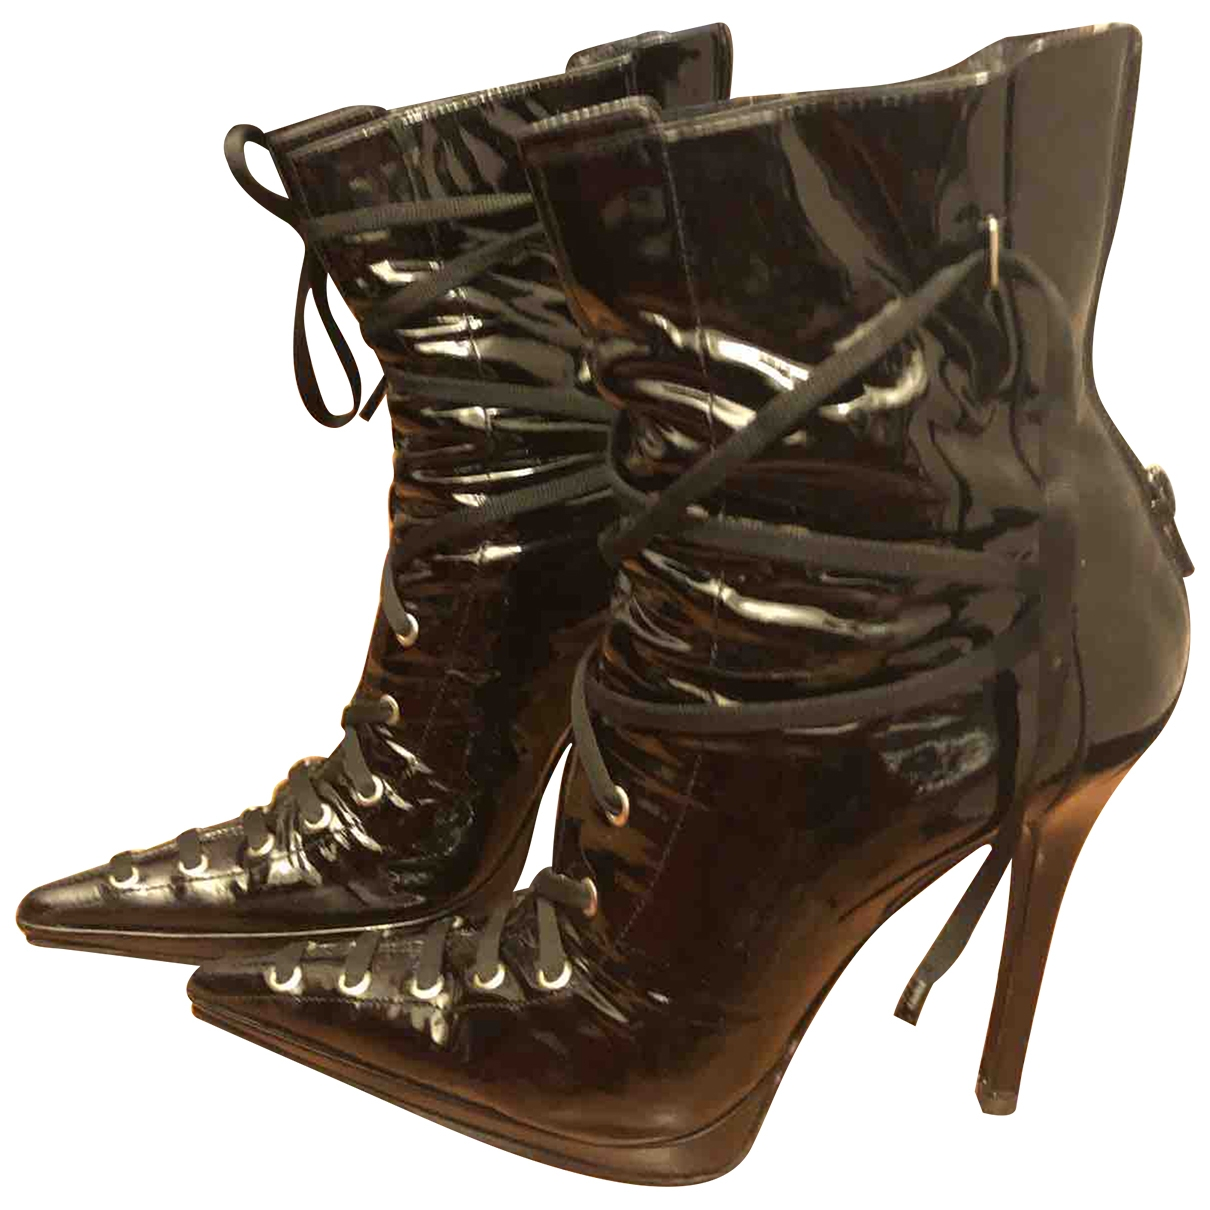 Casadei \N Black Patent leather Ankle boots for Women 40 IT